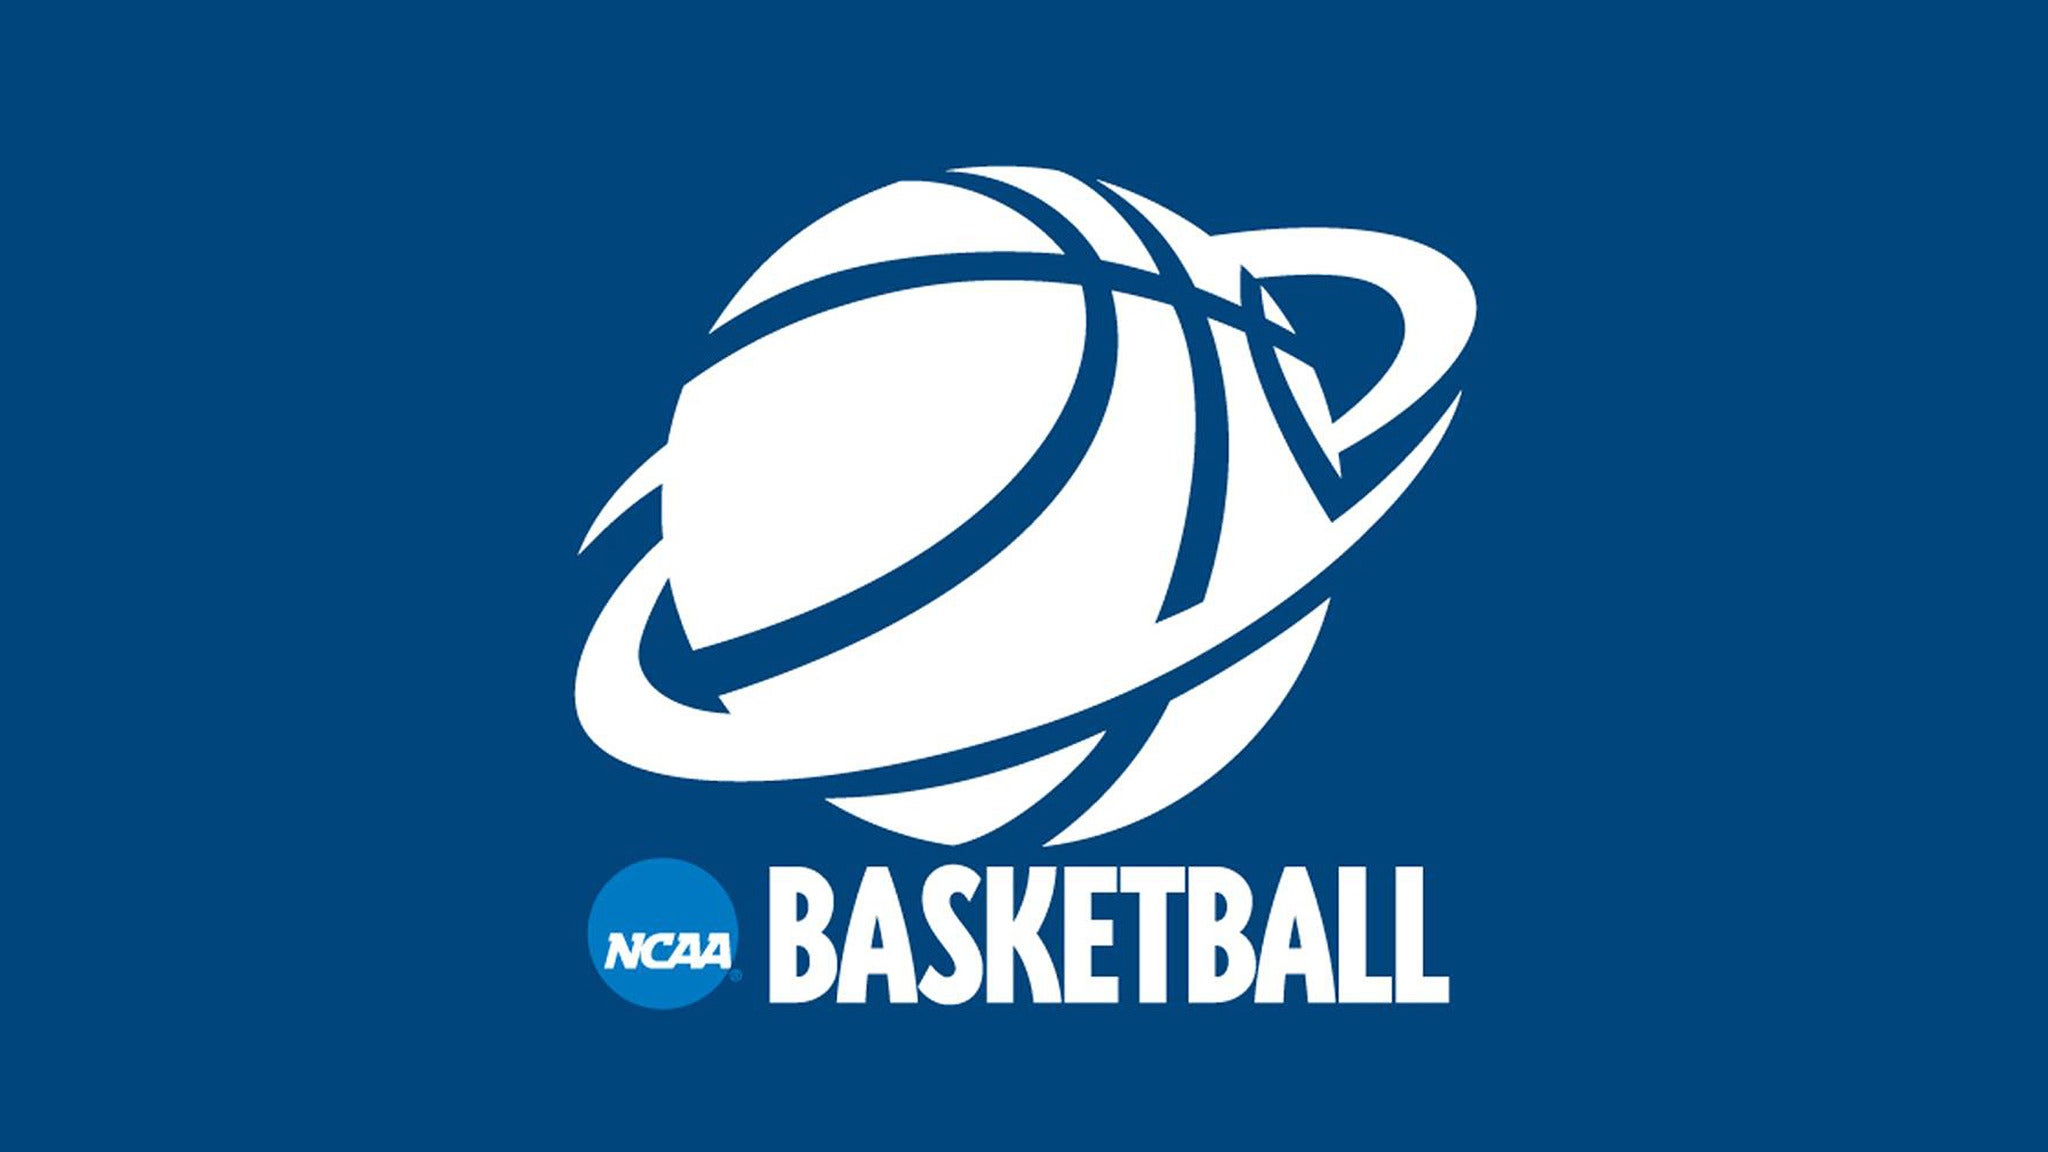 NCAA Division I Women's Basketball at 8 Seconds Saloon